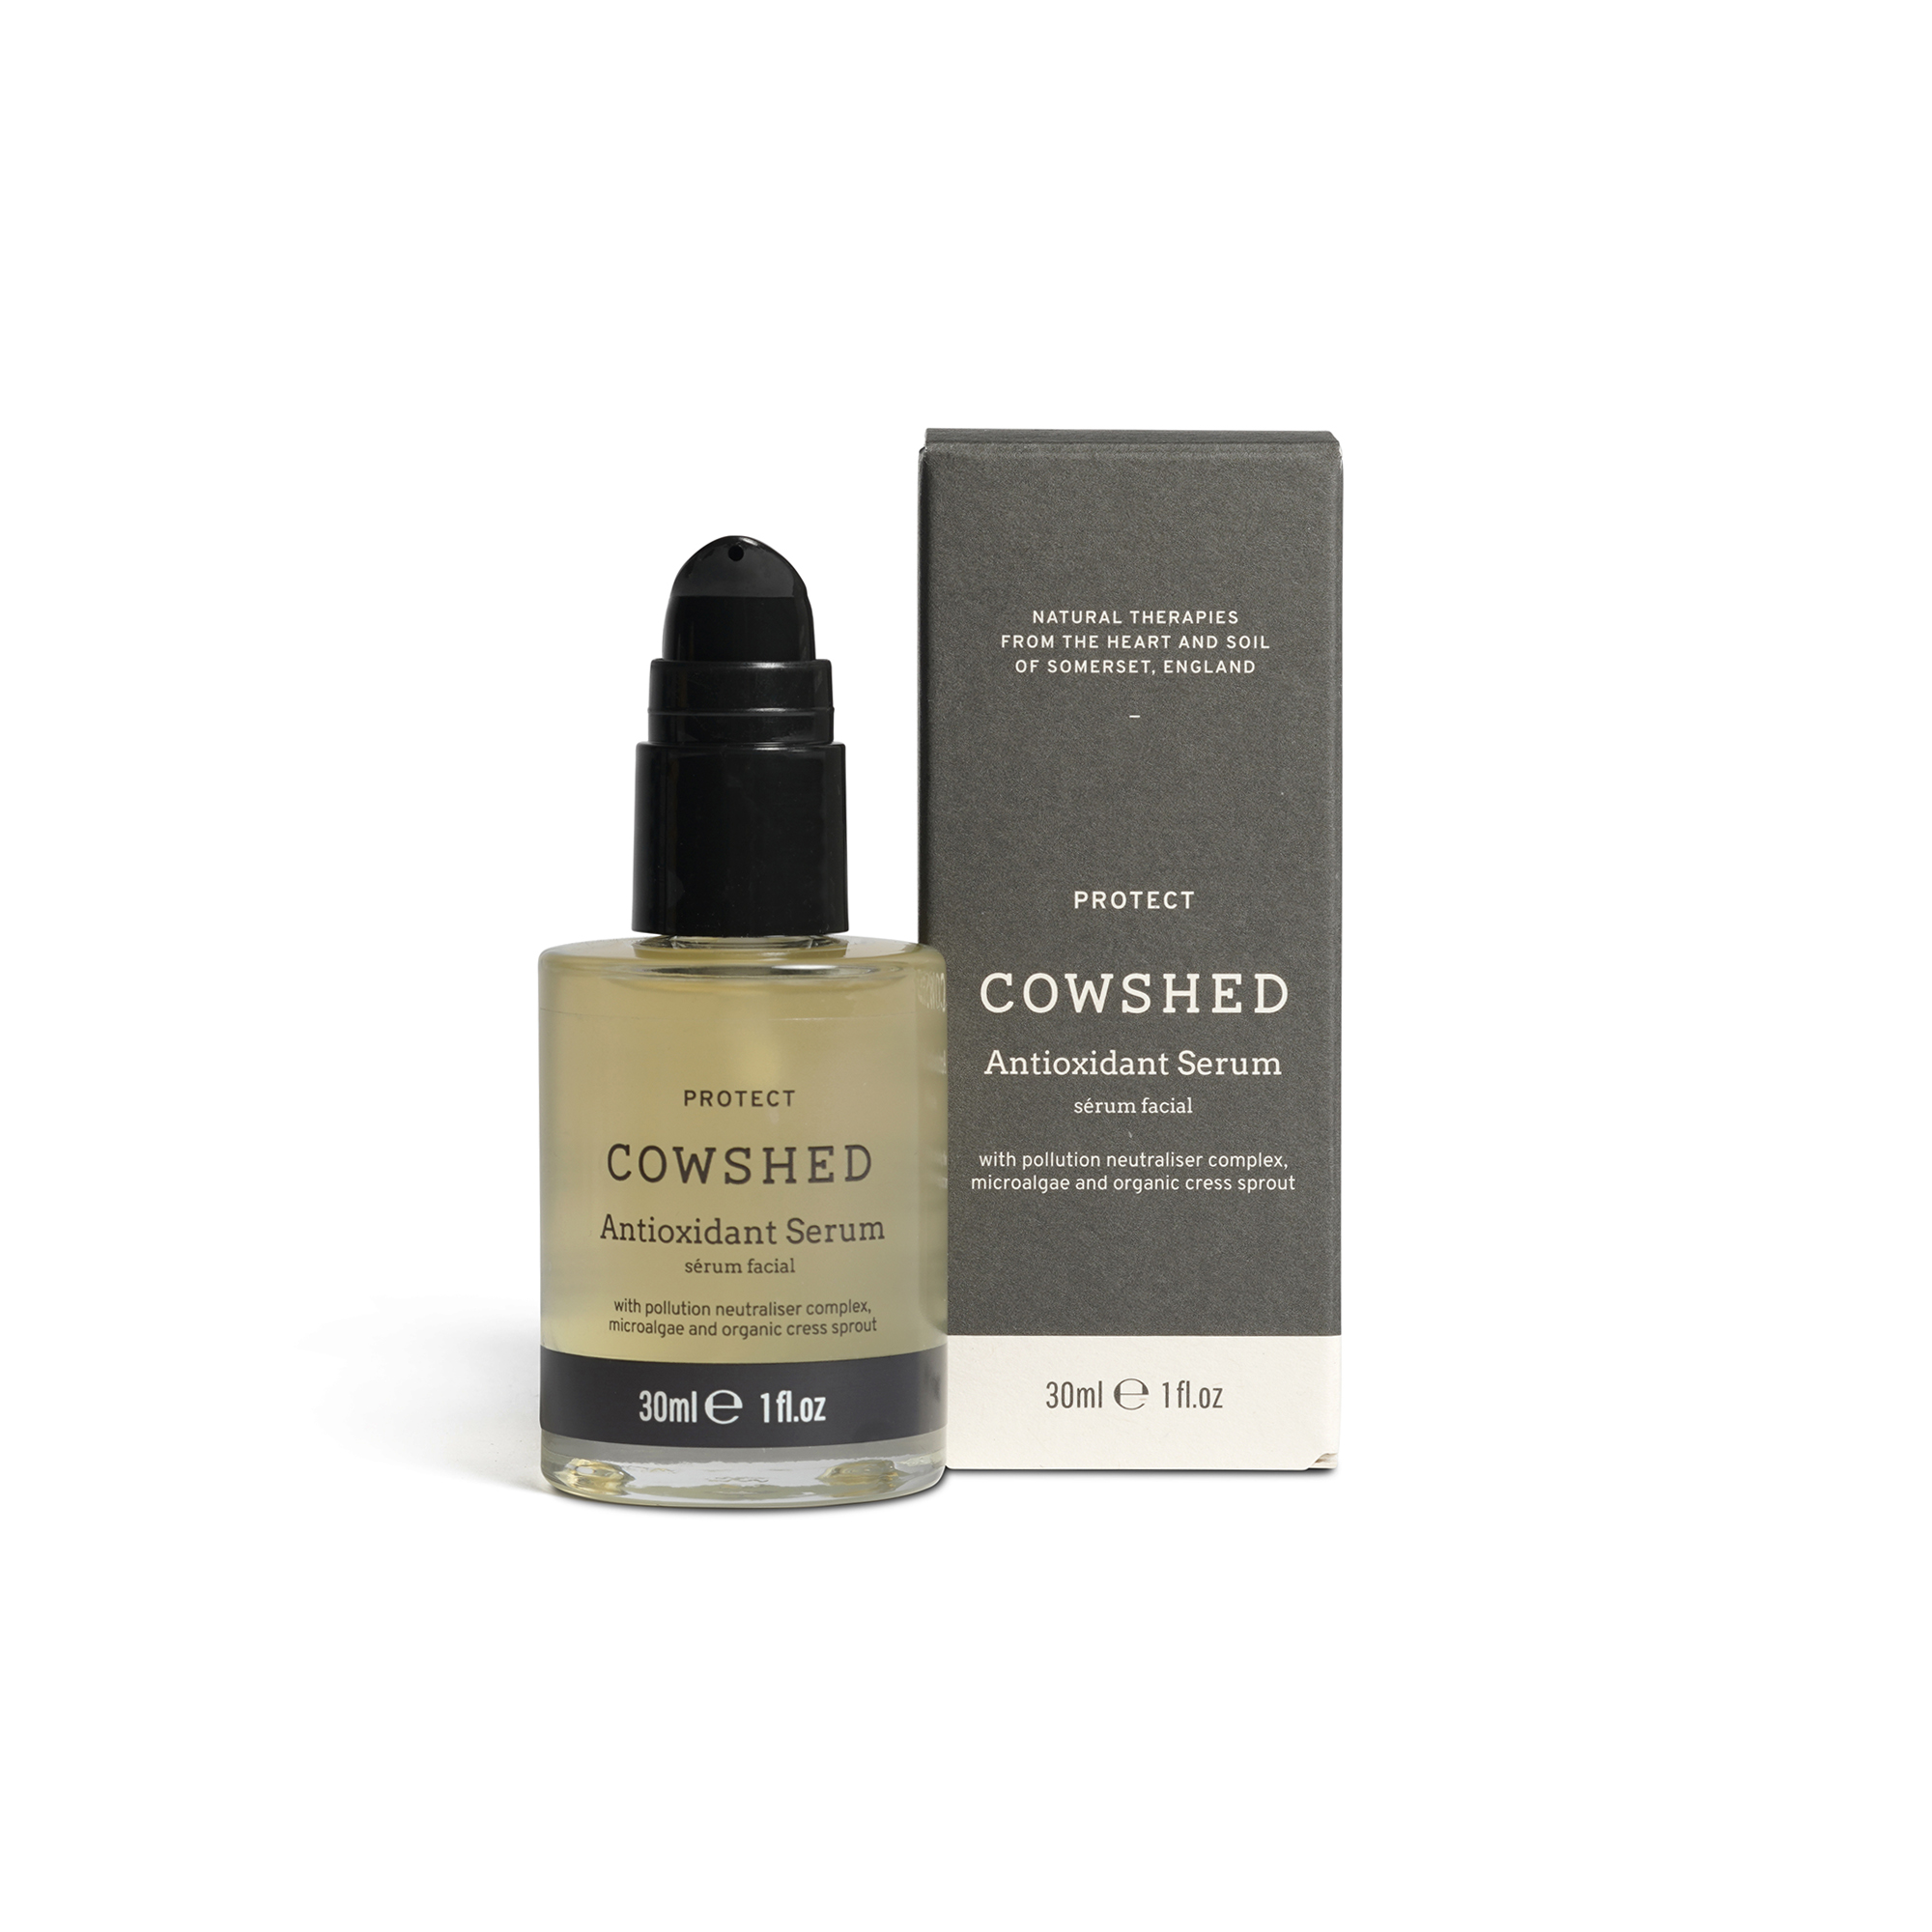 Cowshed PROTECT Antioxidant Serum 30ml